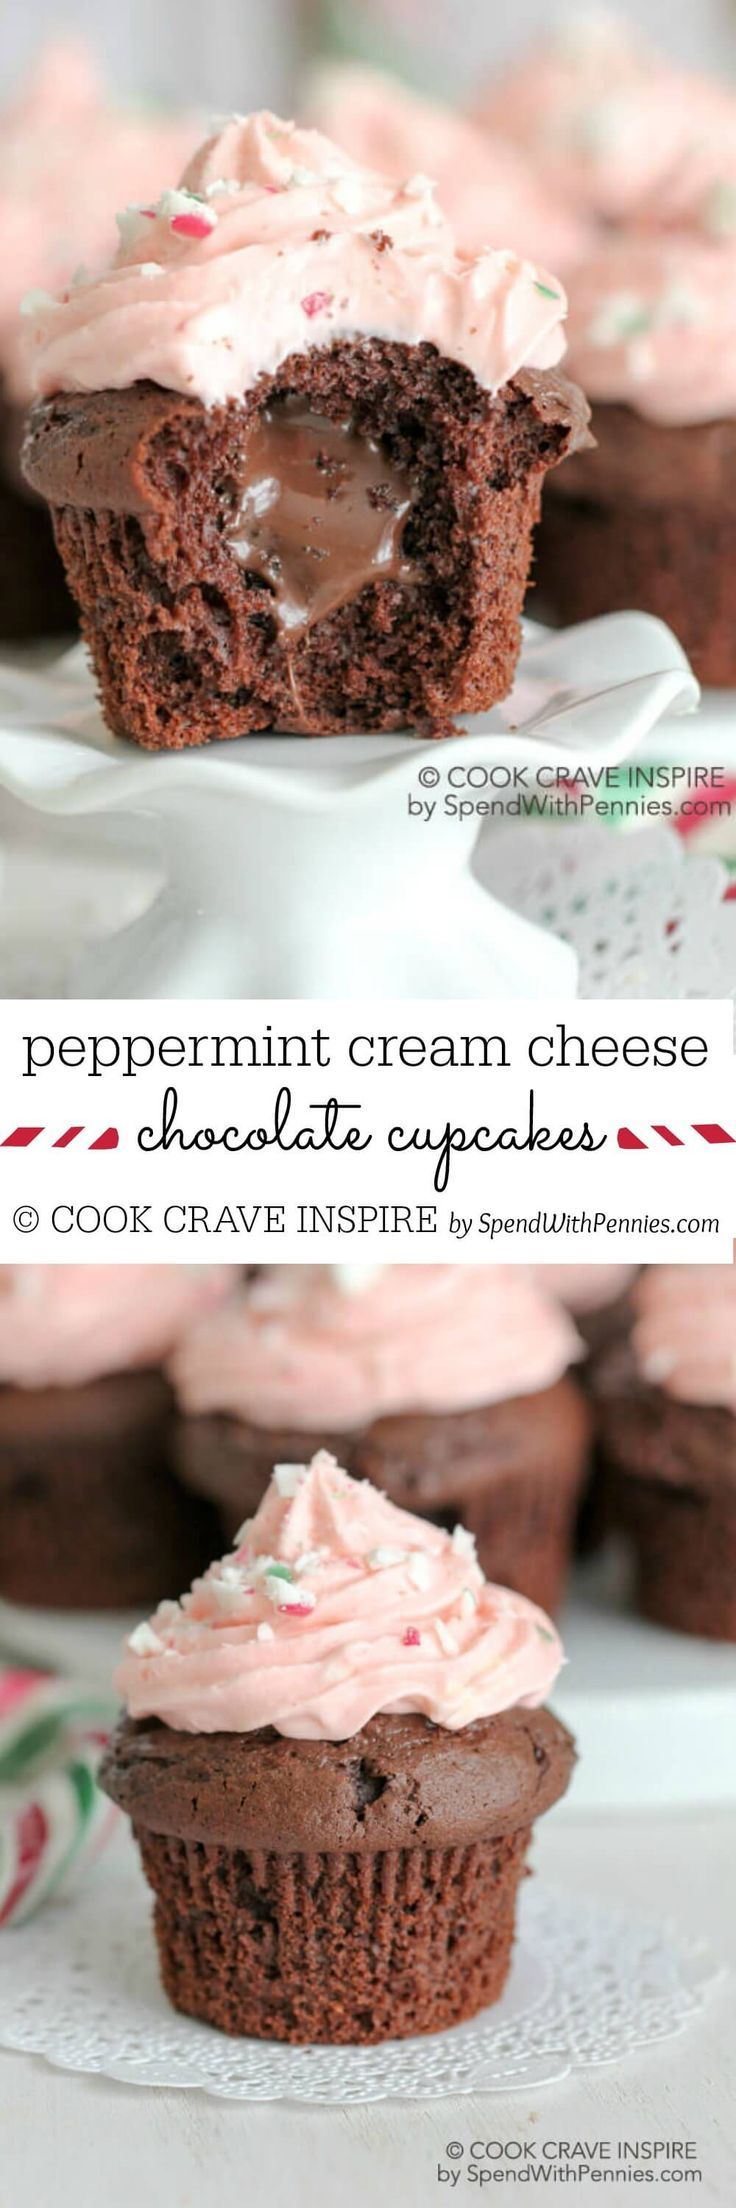 Soft and delicious, these chocolate filled cupcakes are easy to make with a yummy peppermint peppermint cream cheese frosting! The perfect Christmas Cupcake idea!